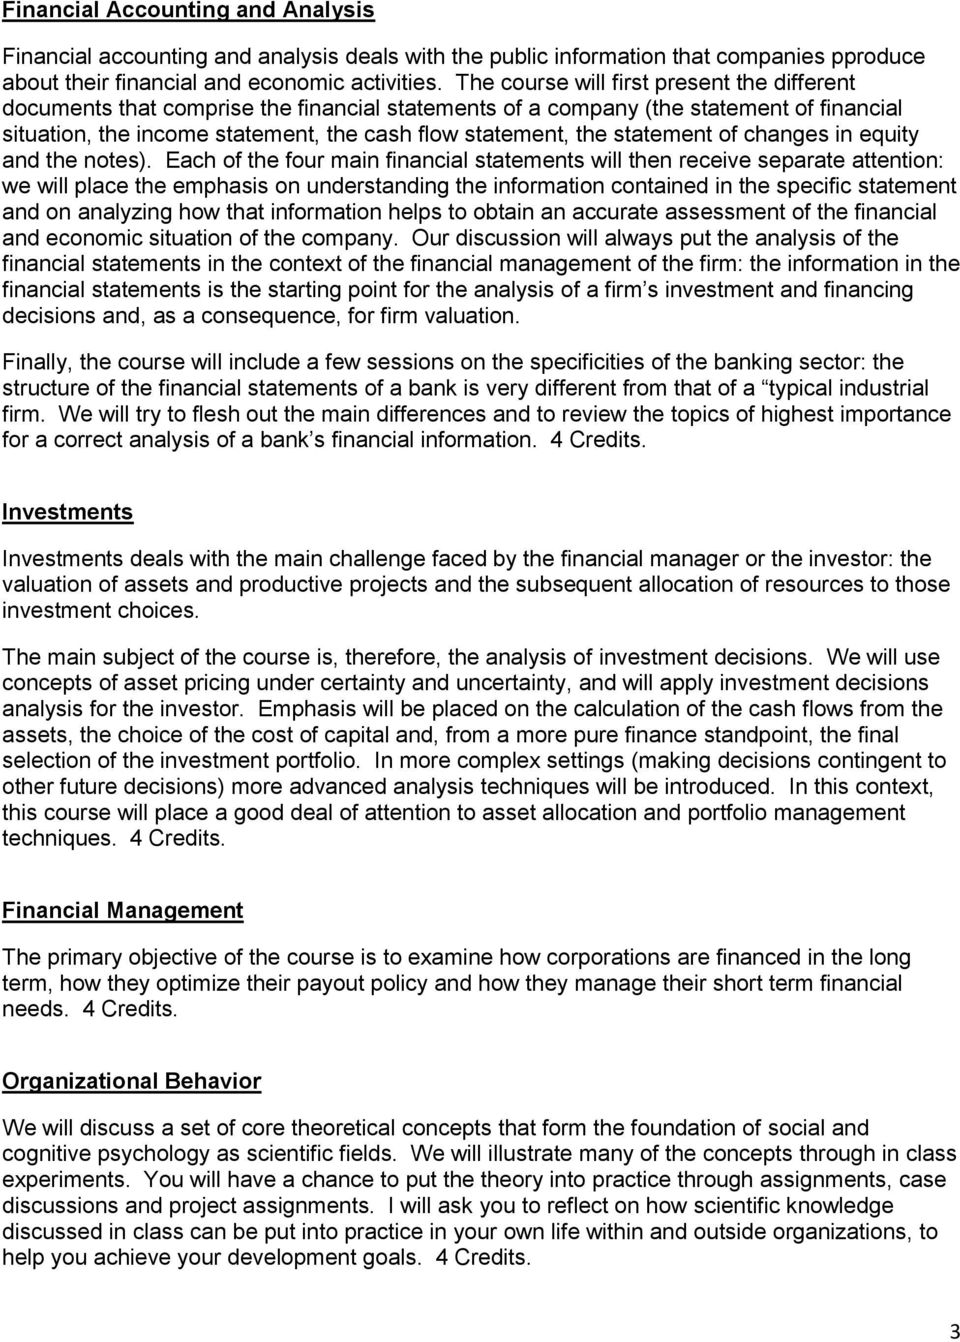 statement of changes in equity and the notes).